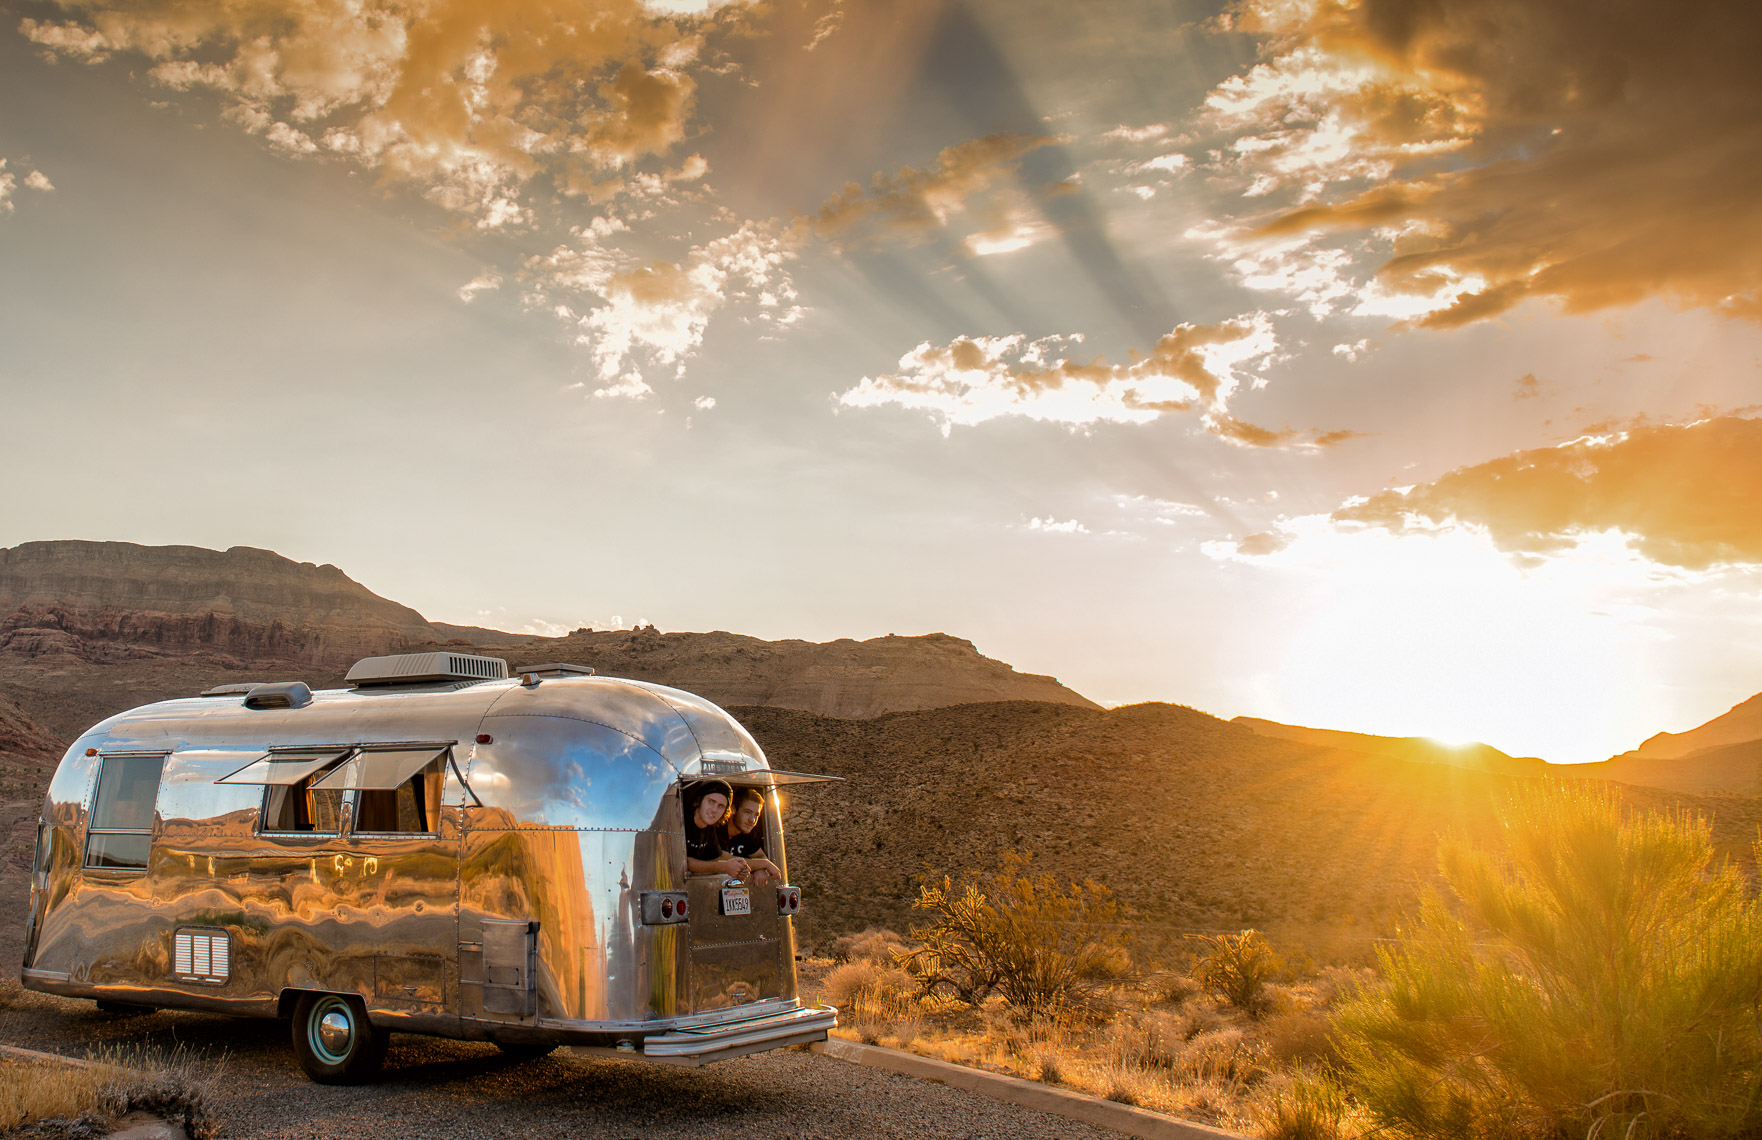 Kevin Steele - Young men look out of a vintage Airstream